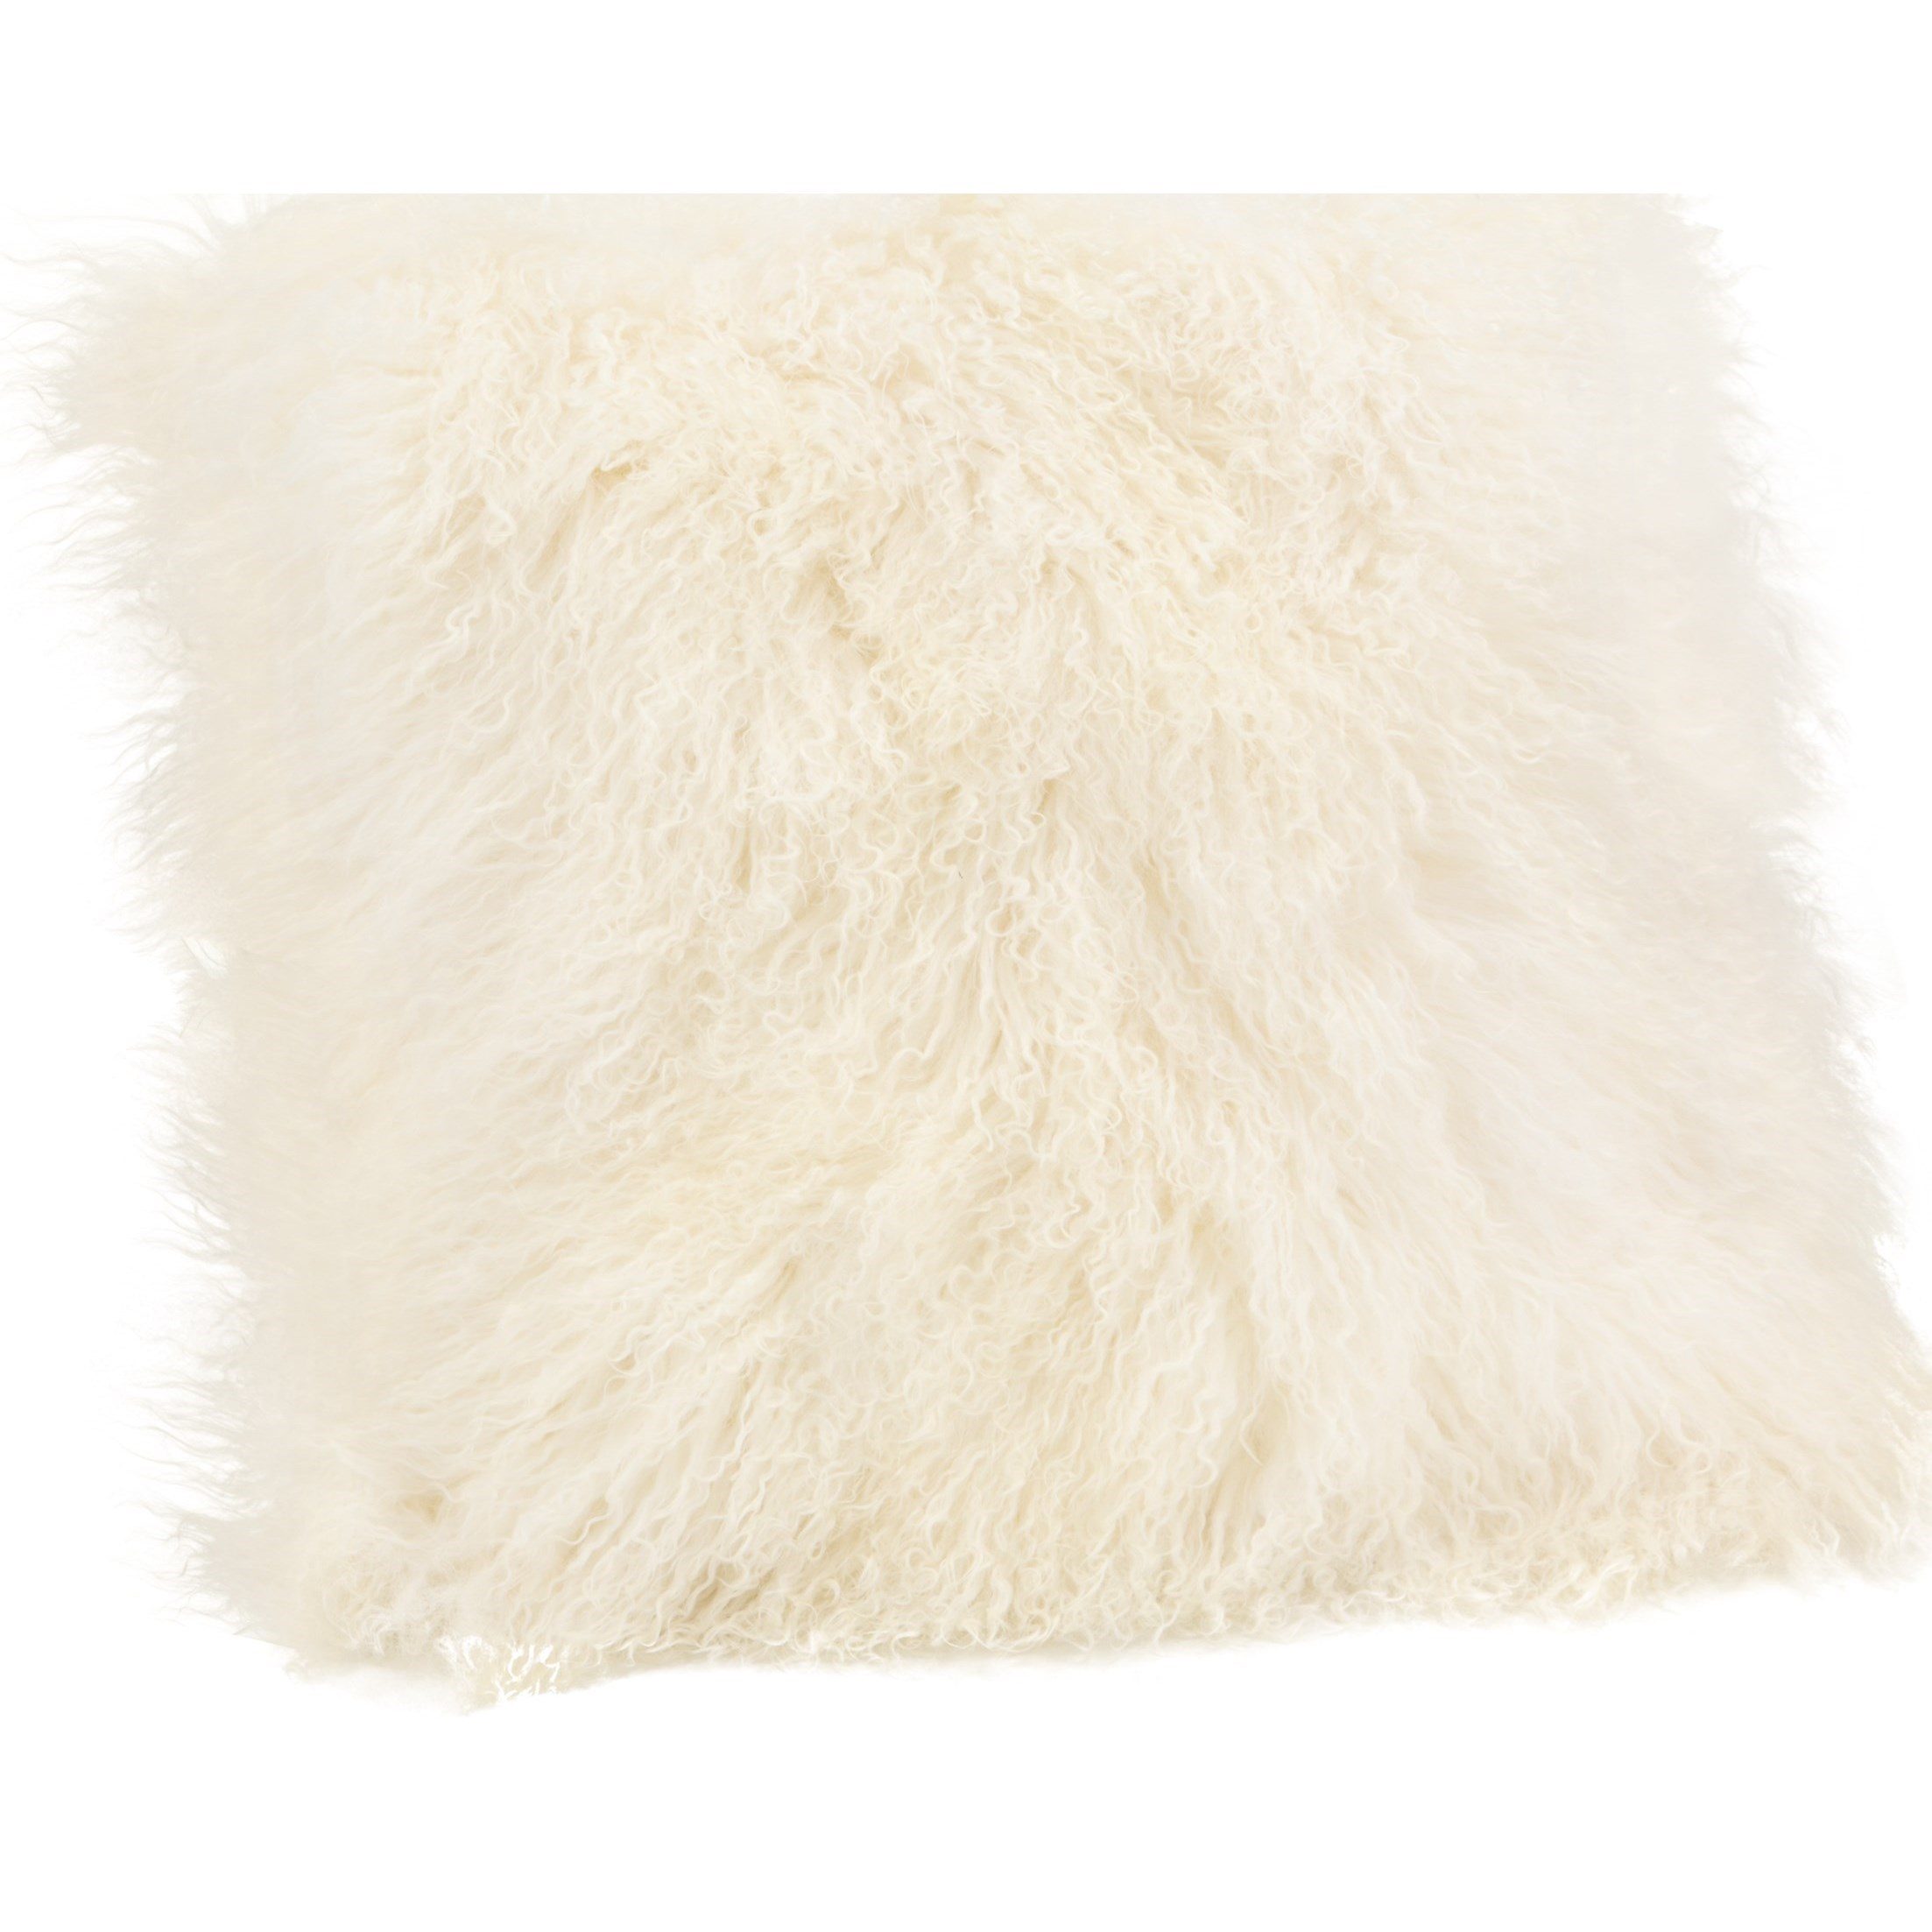 Pillows and Throws Lamb Fur Pillow Large  Cream by Moe's Home Collection at Stoney Creek Furniture